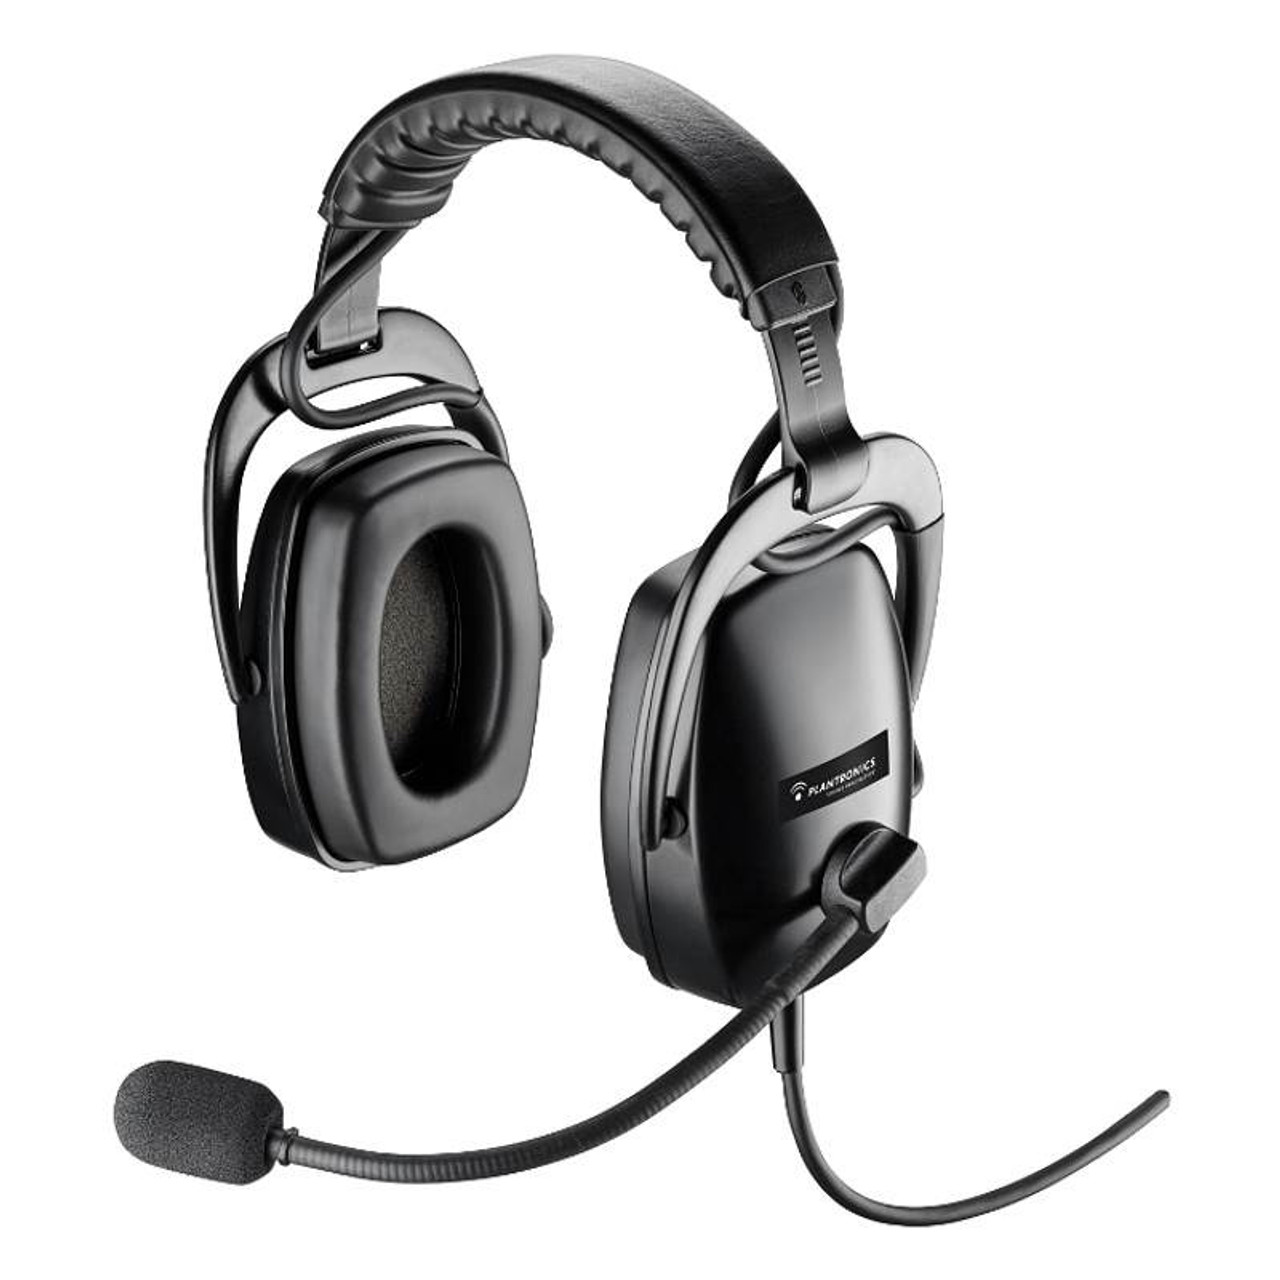 Image for Plantronics SHR2083-01 Dual-Ear Circumaural Ruggedized Noise-Cancelling Headset CX Computer Superstore